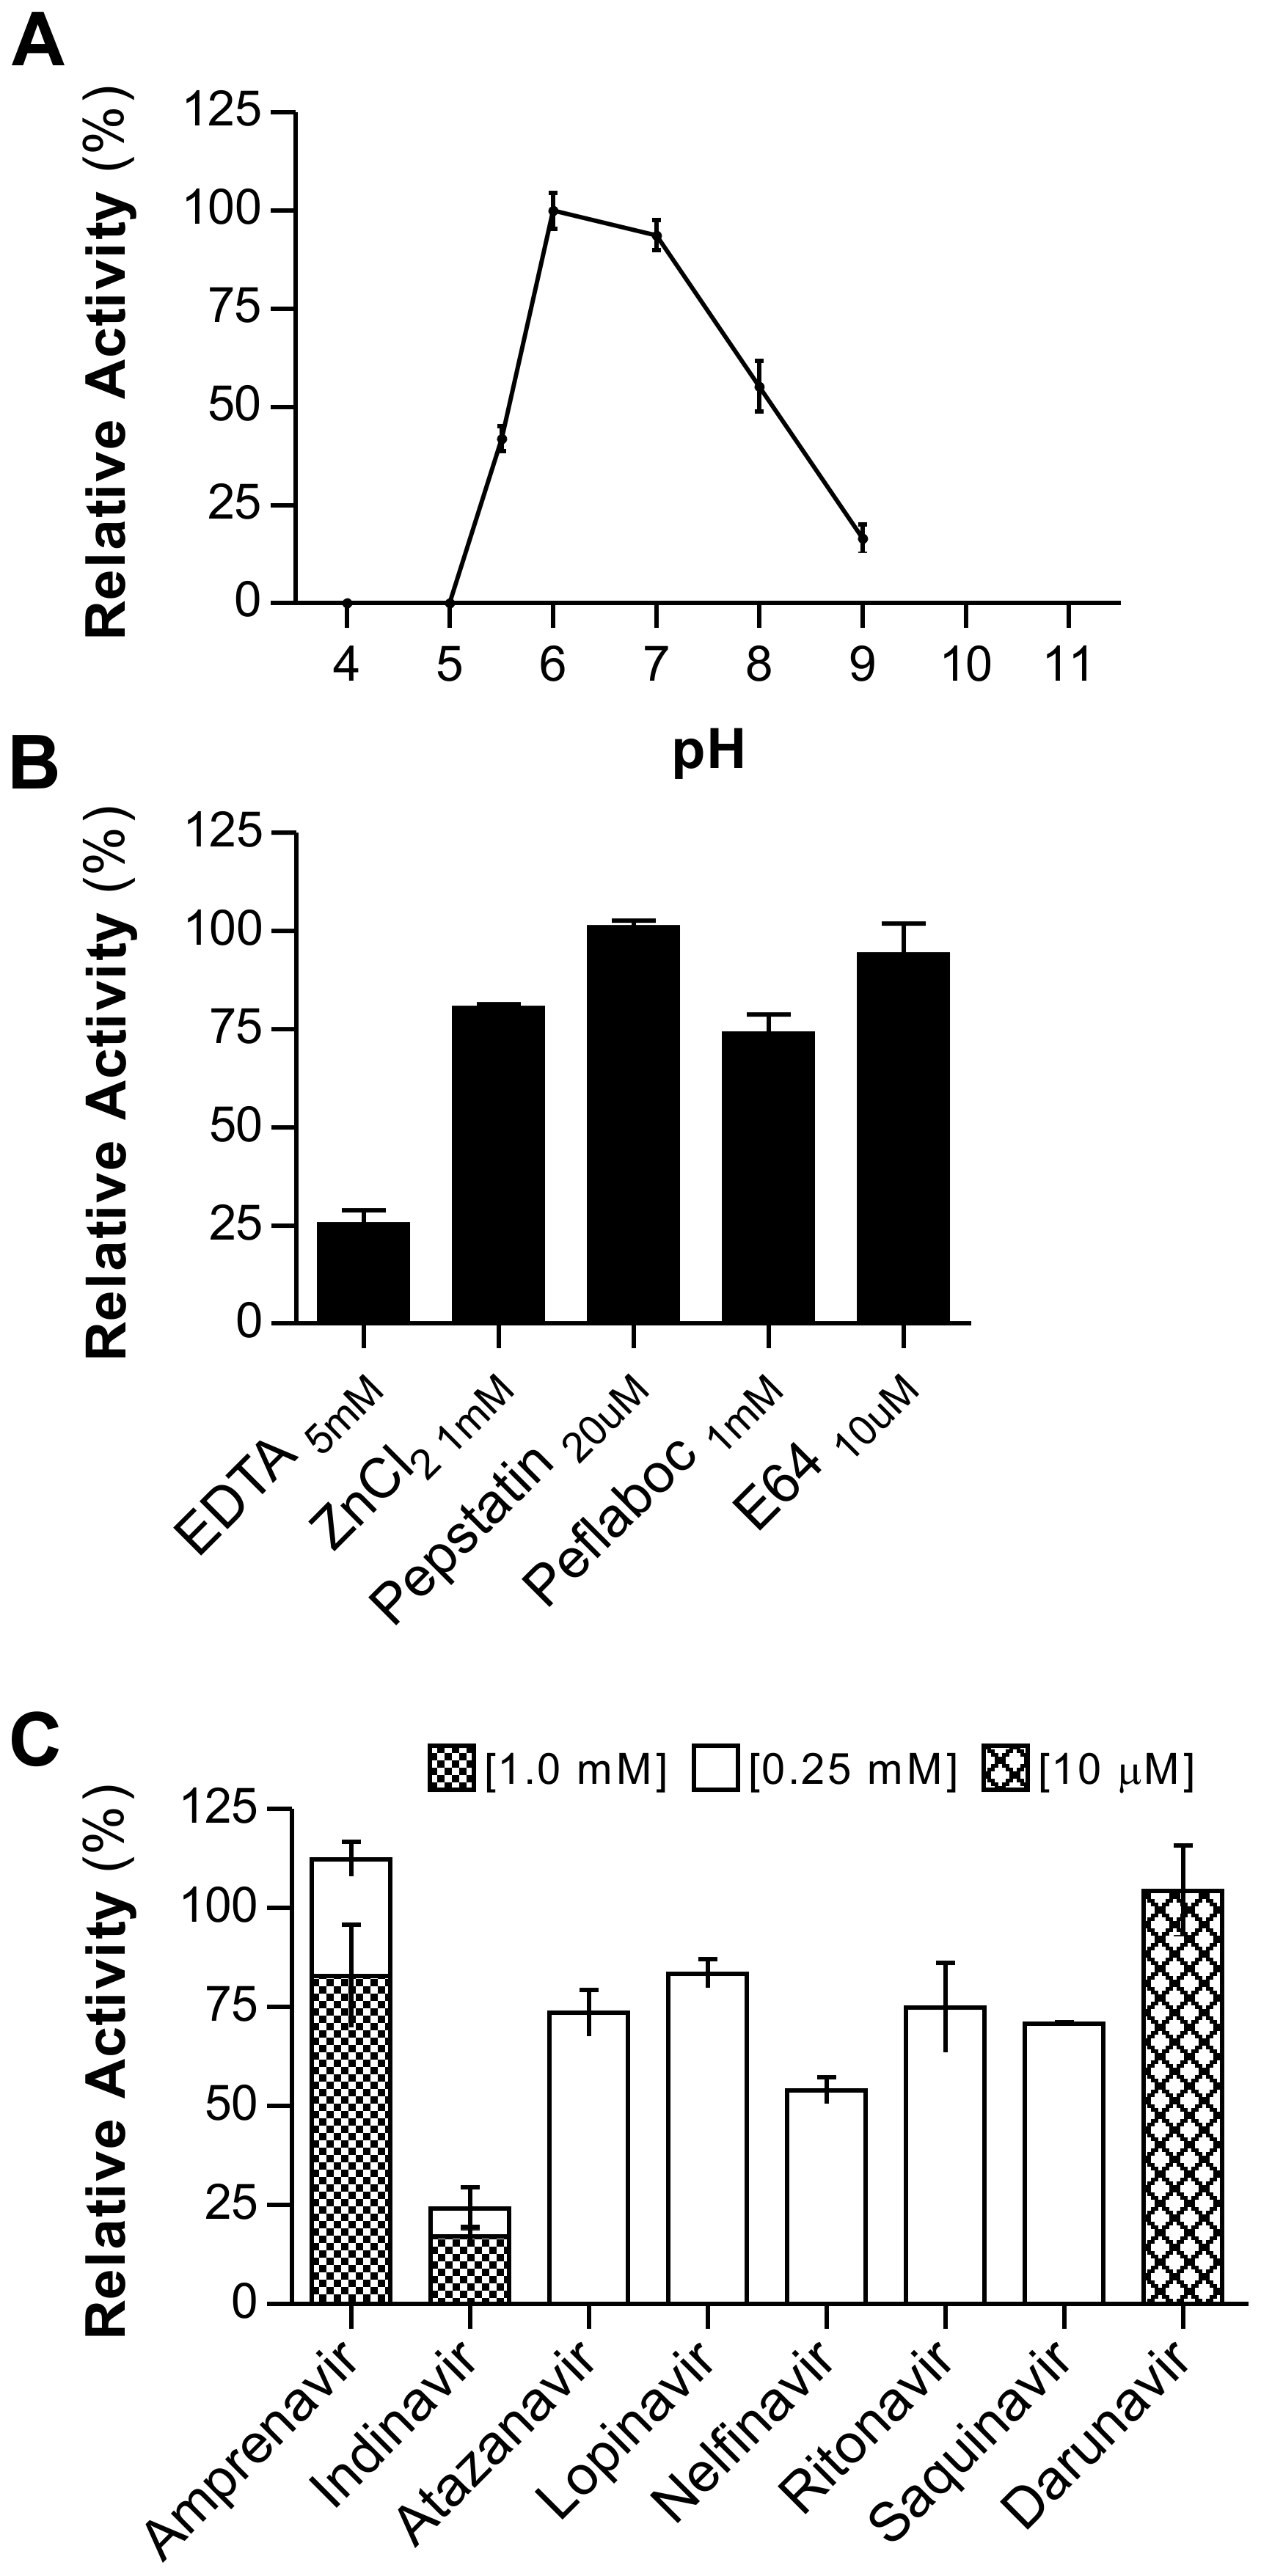 rAPRc activation product displays optimal activity at pH 6 and is strongly inhibited by specific HIV-1 PR inhibitors.